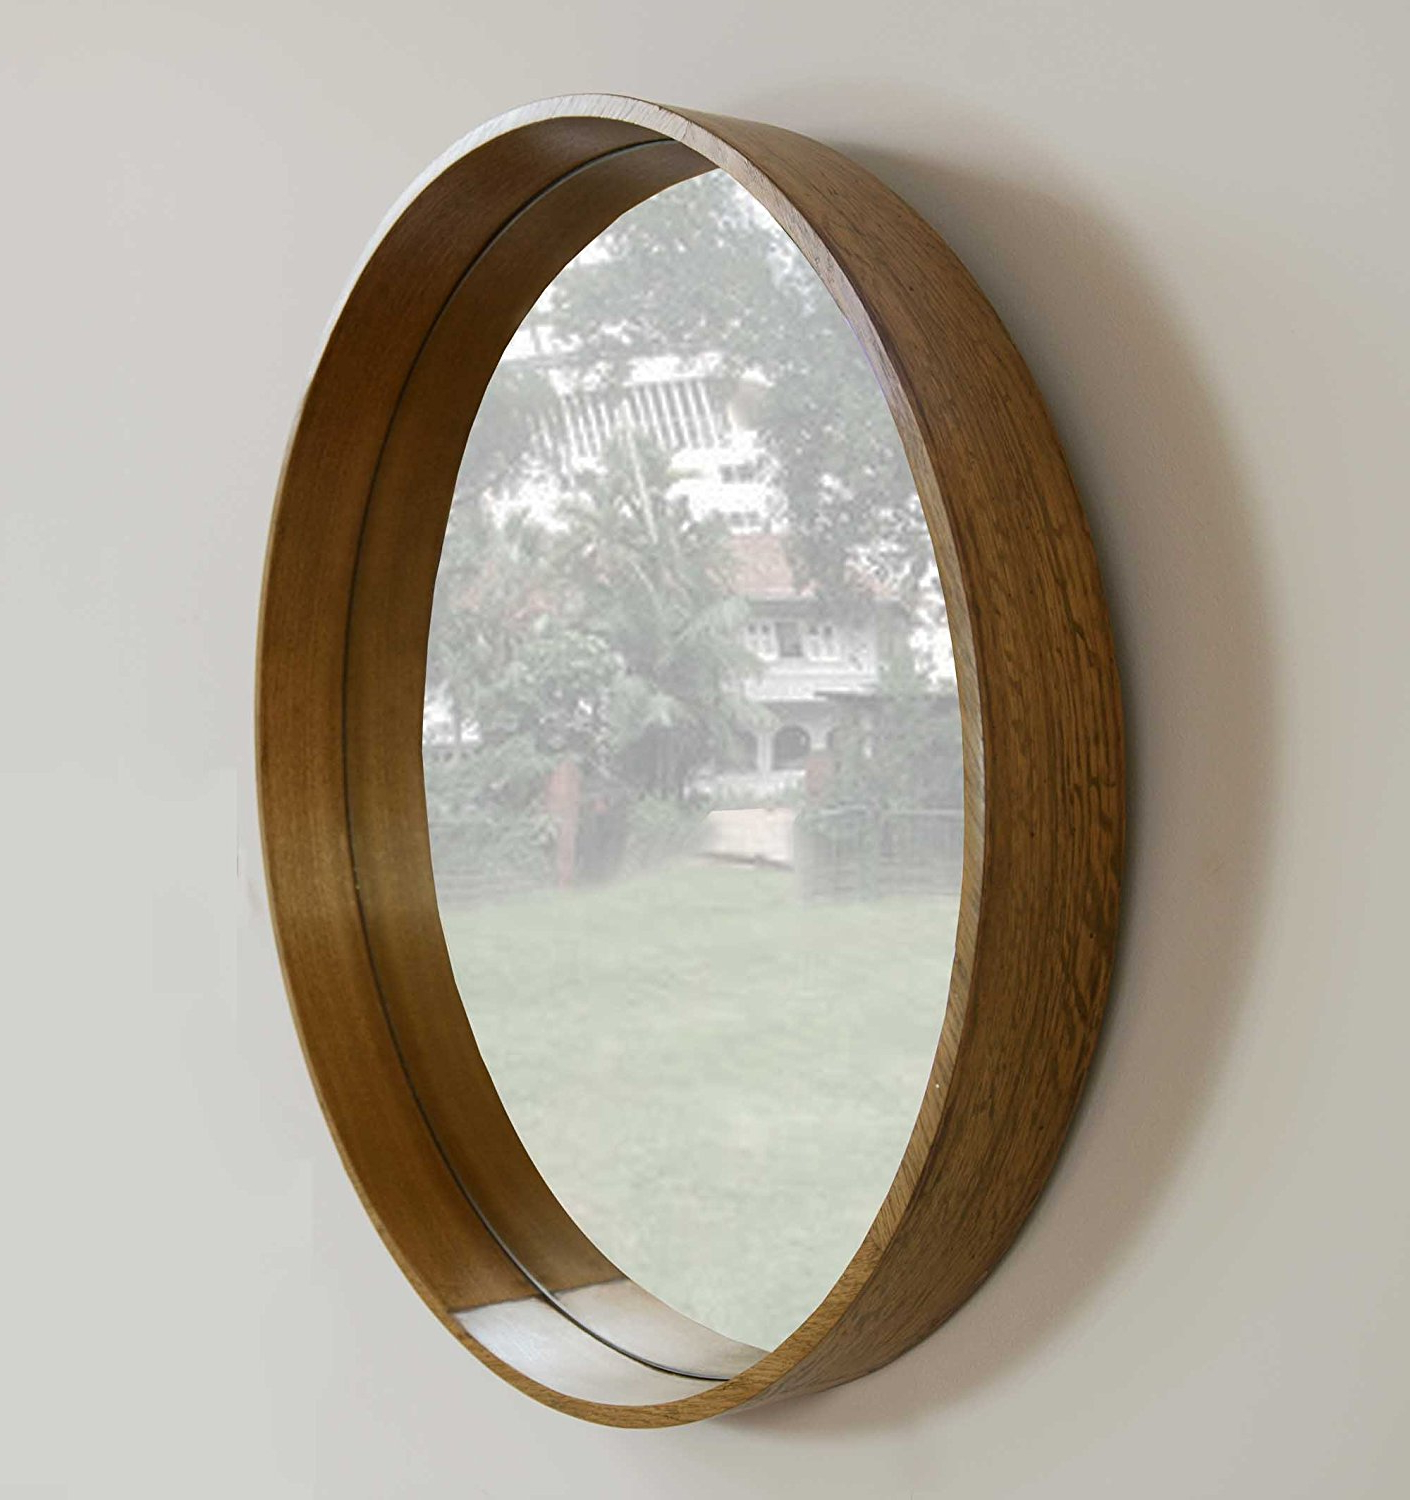 Most Recently Released My Furniture Large Luxury Round Wall Mirror Wooden Circle 6 With Regard To Large Wooden Wall Mirrors (View 20 of 20)